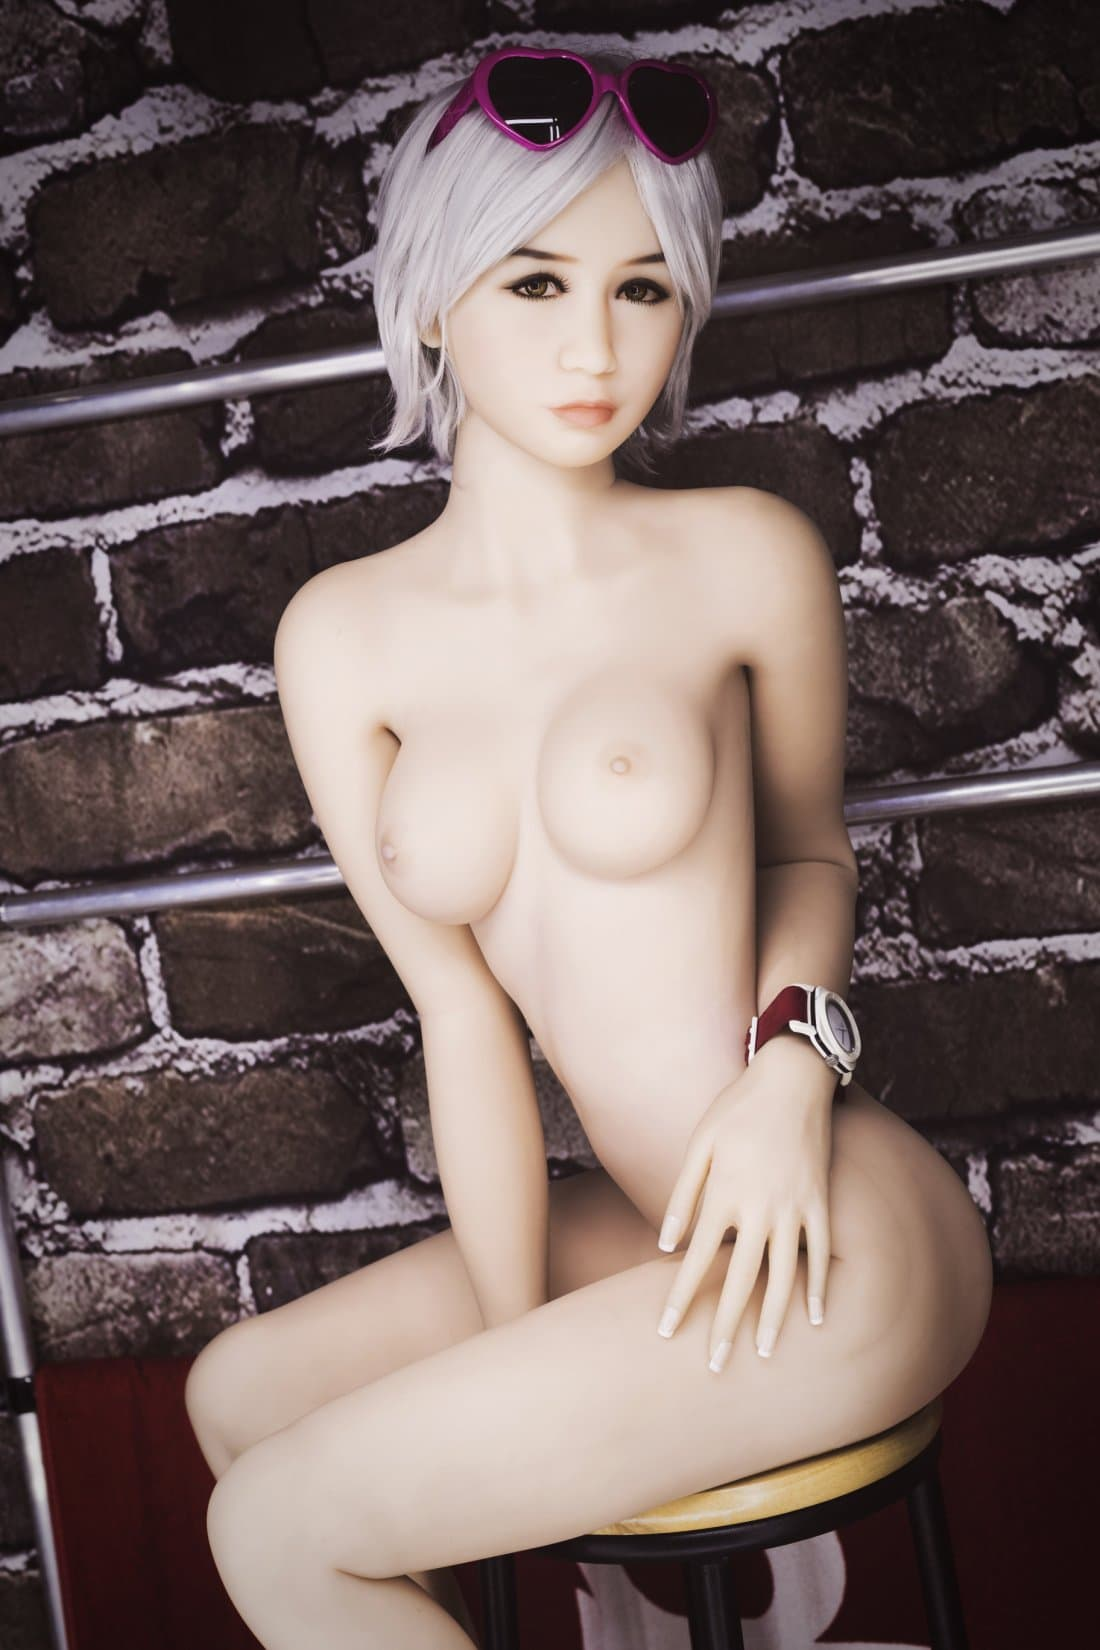 hattie 157cm blonde skinny flat chested tpe wm sex doll(11)